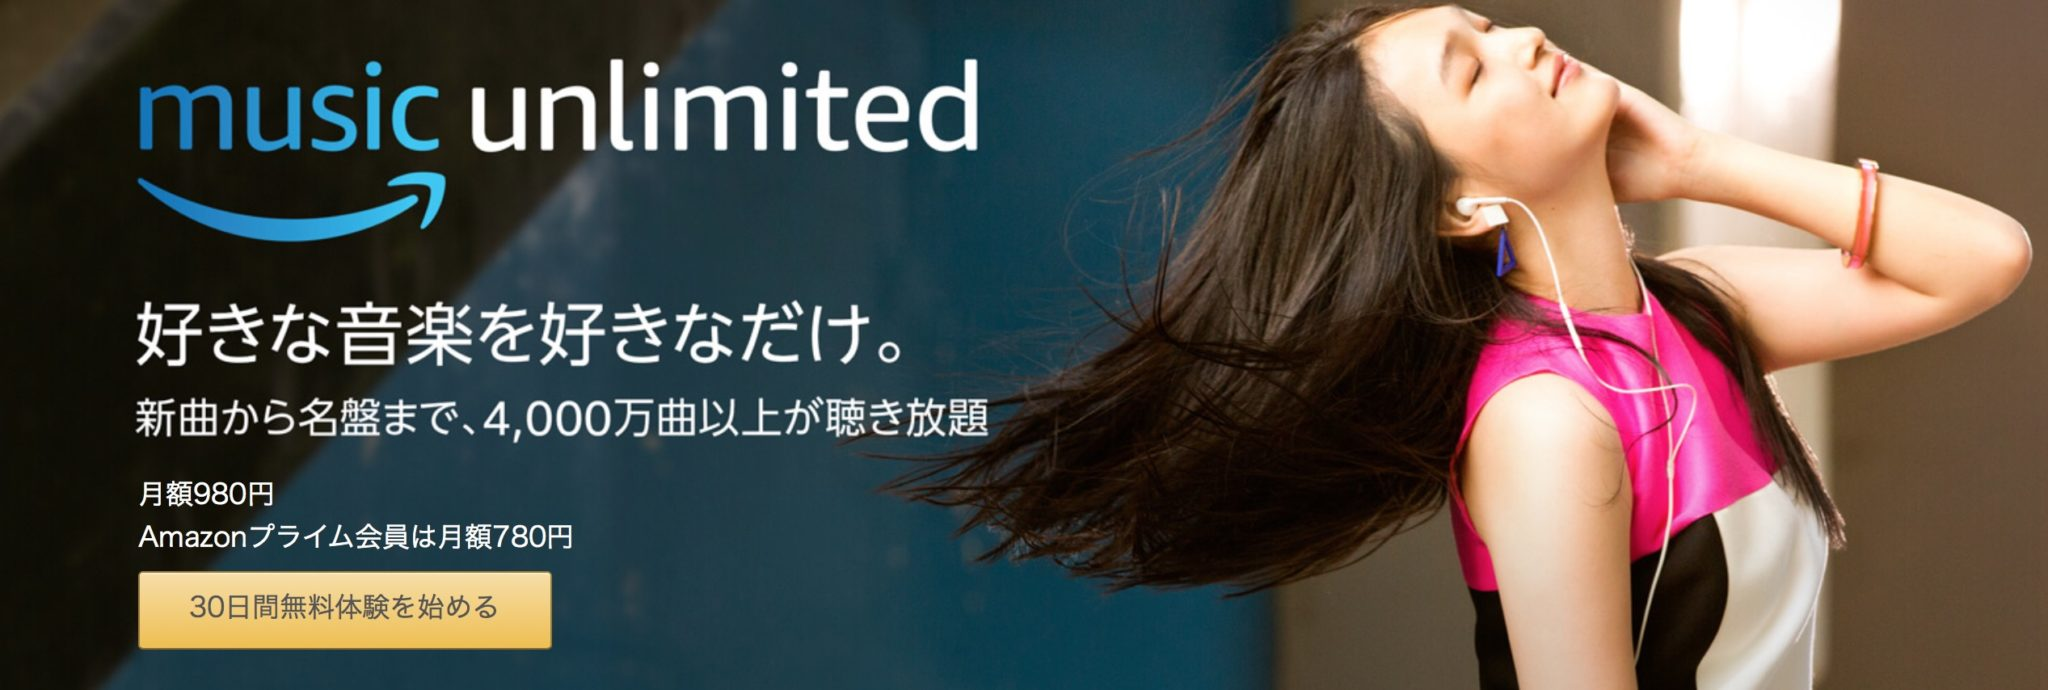 Amazon Music Unlimited 評判